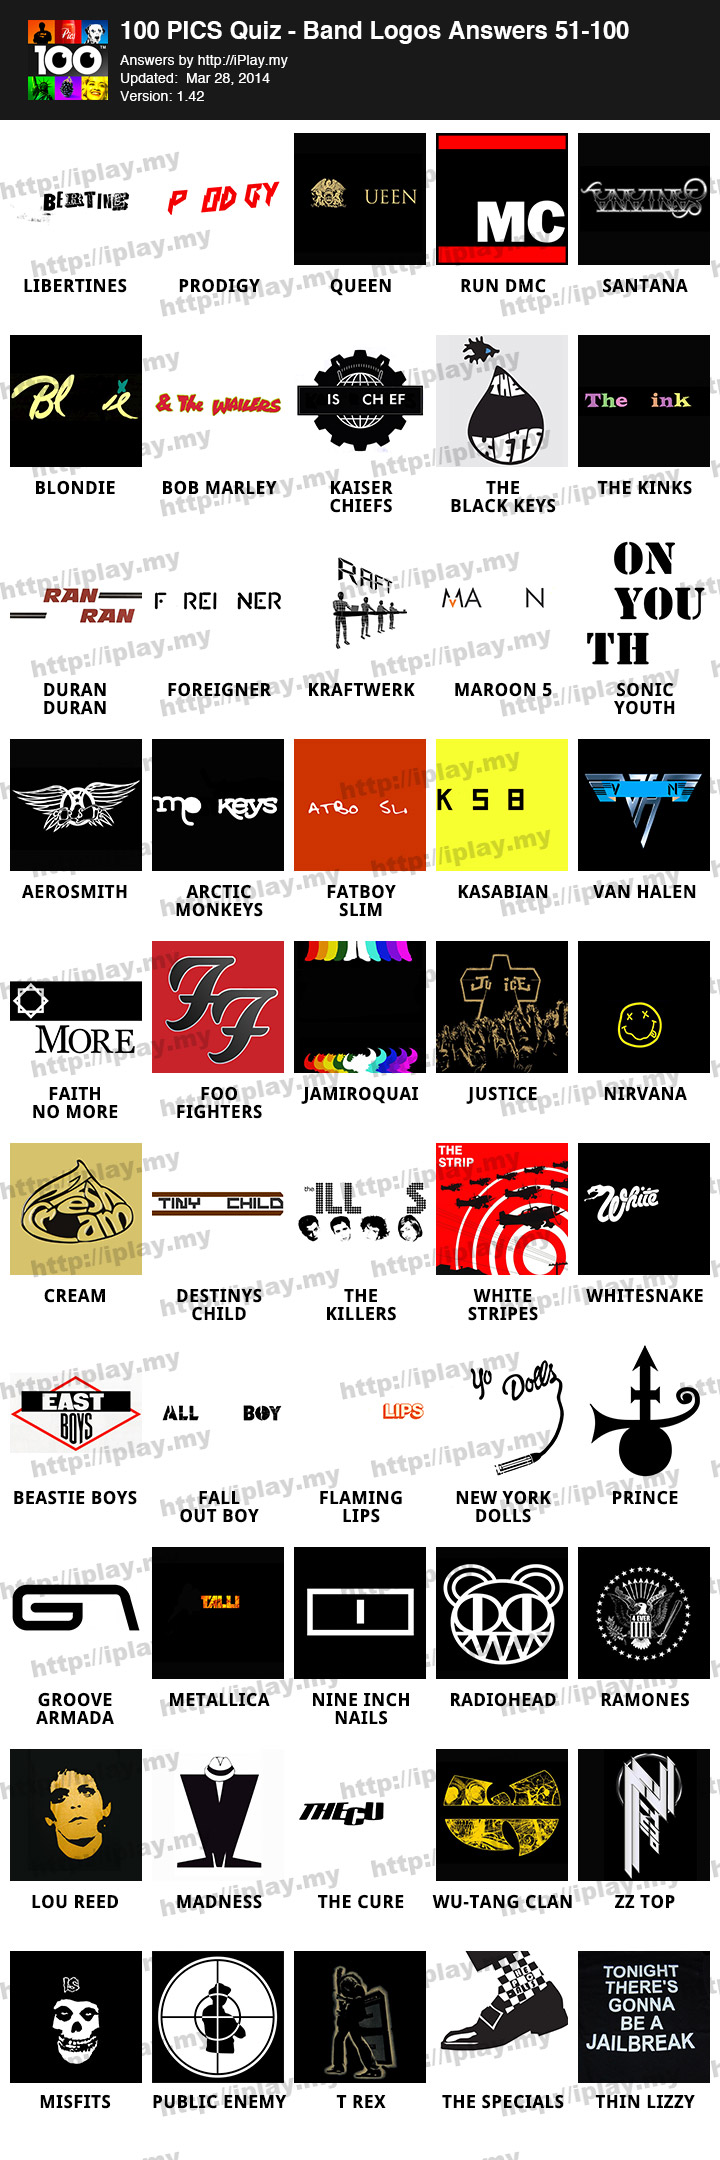 Logo Pics Answers Band Logos 100 Pics Quiz – Band Logos